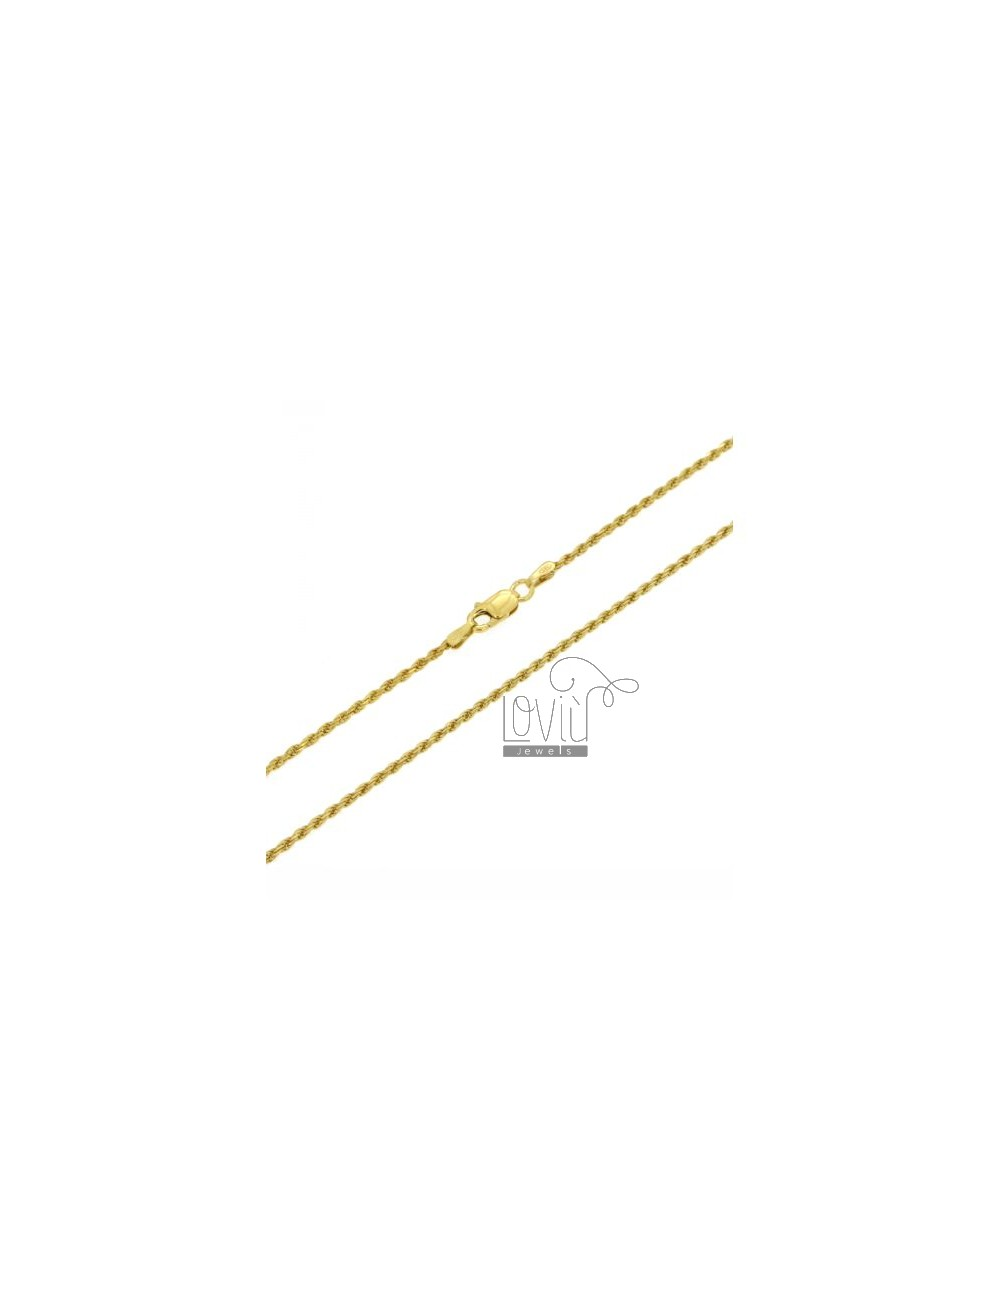 FUNETTA CHAIN 1.6 MM GOLD PLATED 40 CM IN AG TIT 925 ‰